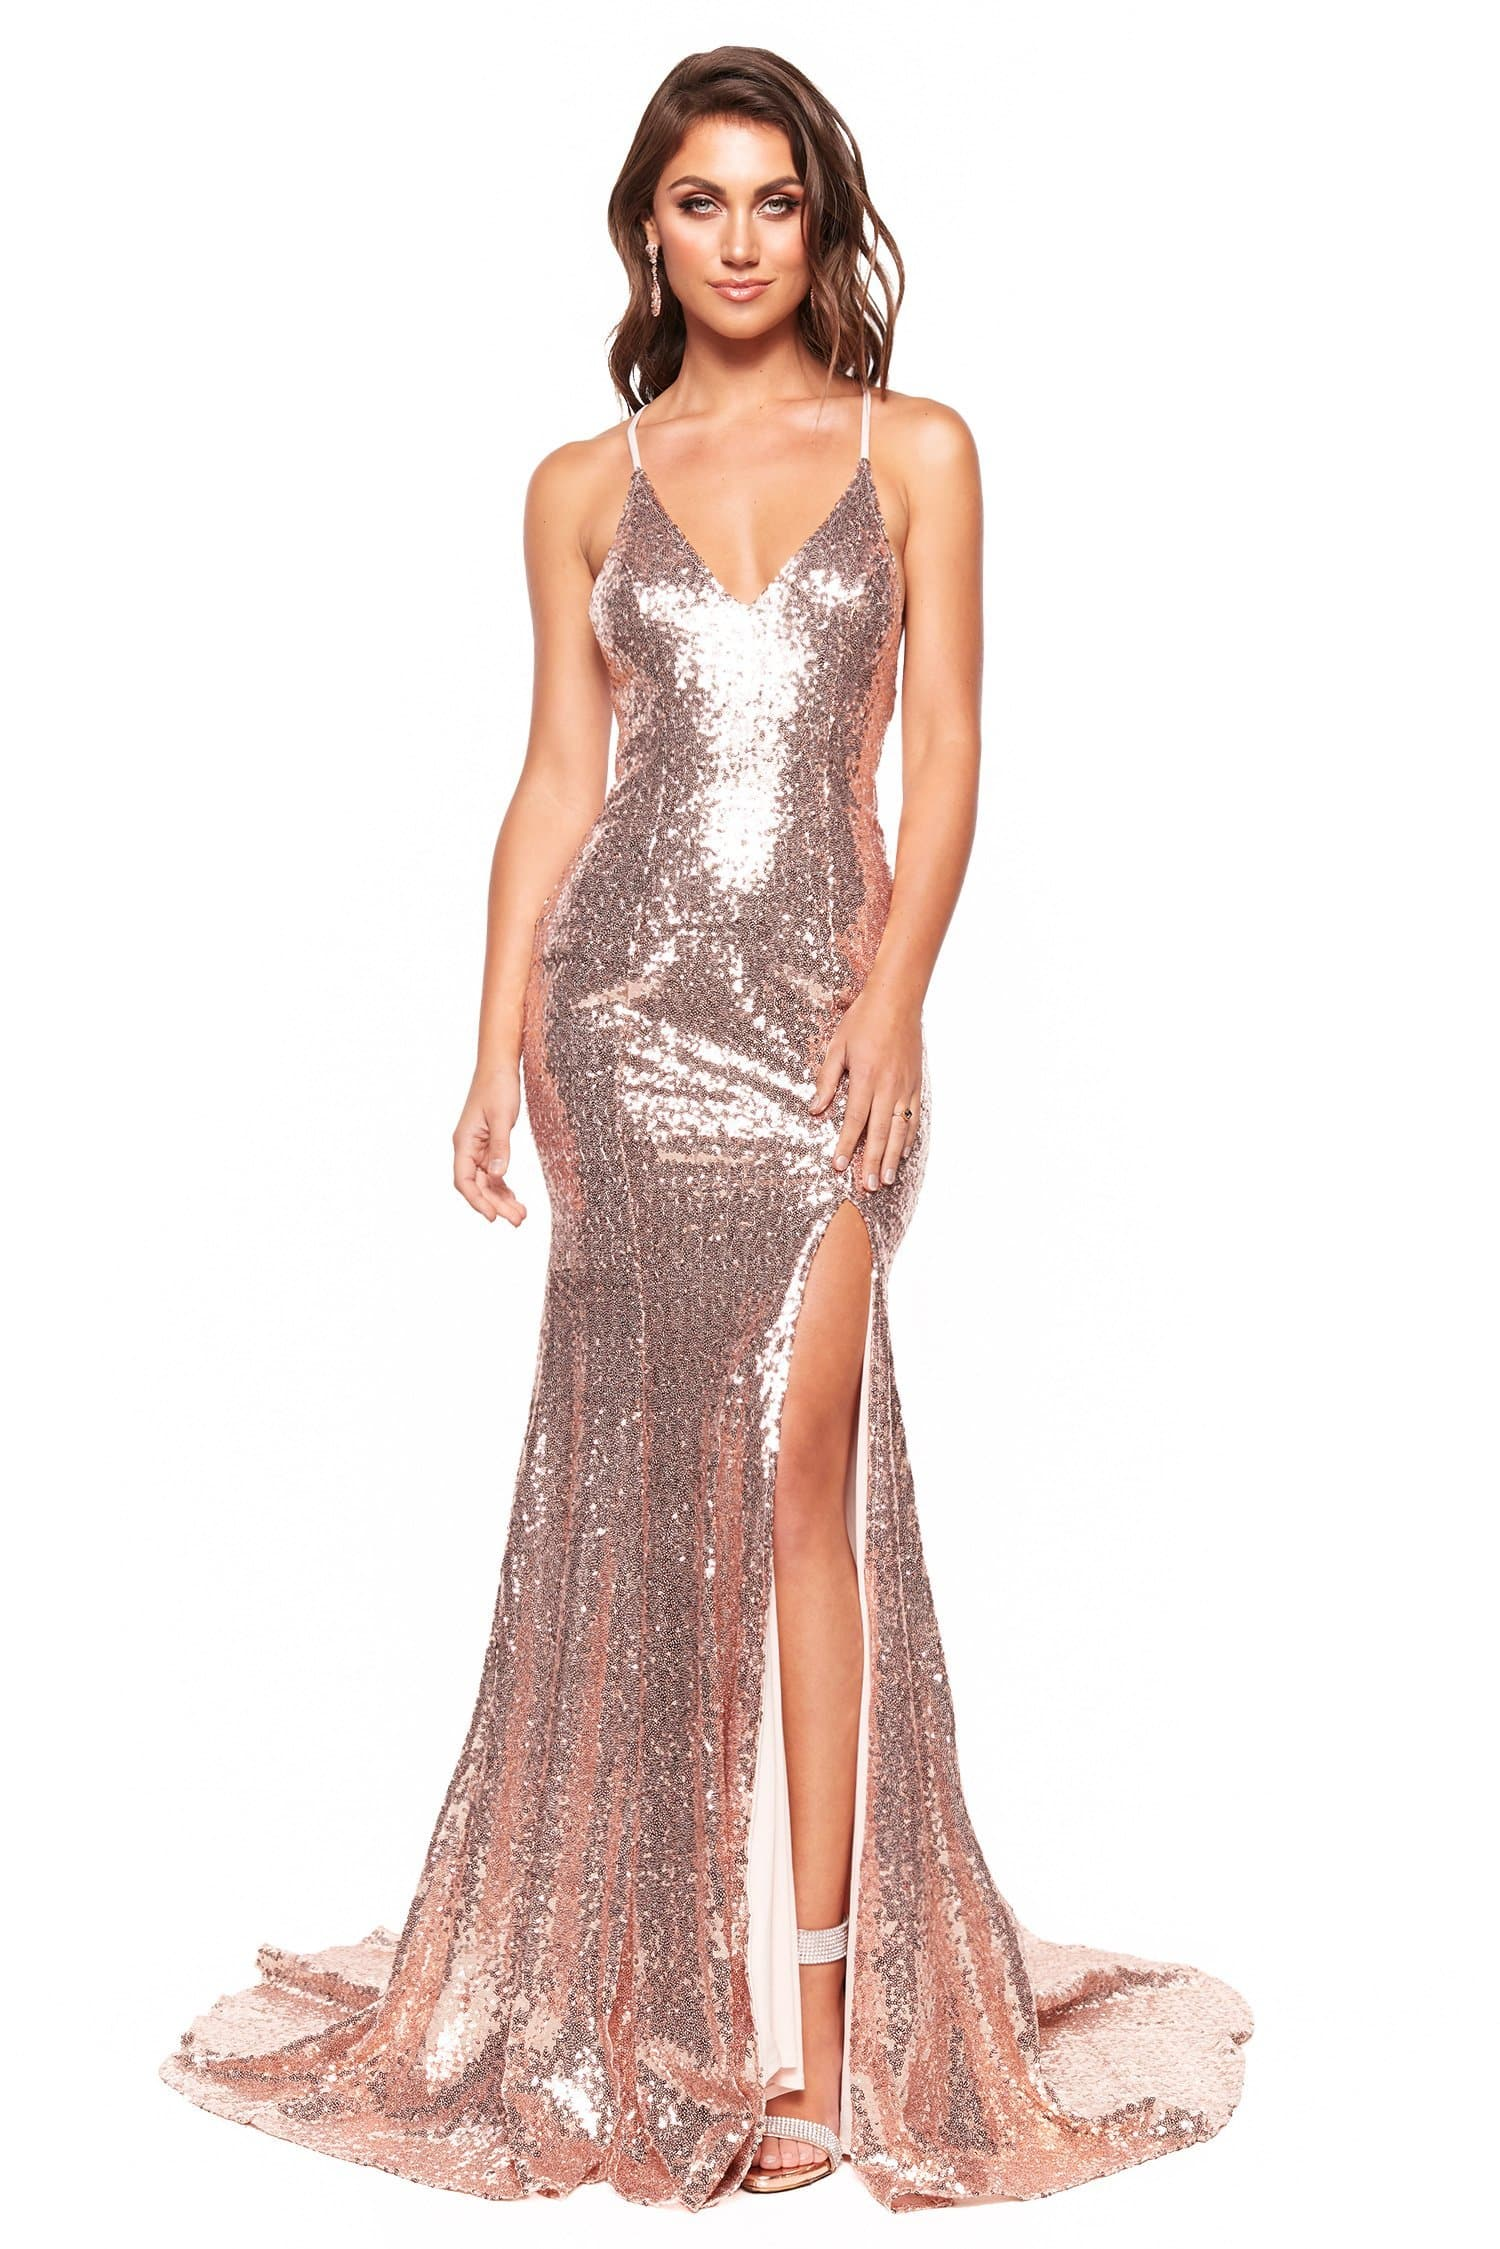 A&N Luxe Chelsea - Rose Gold Plunge Sequin Mermaid Gown with Side Slit